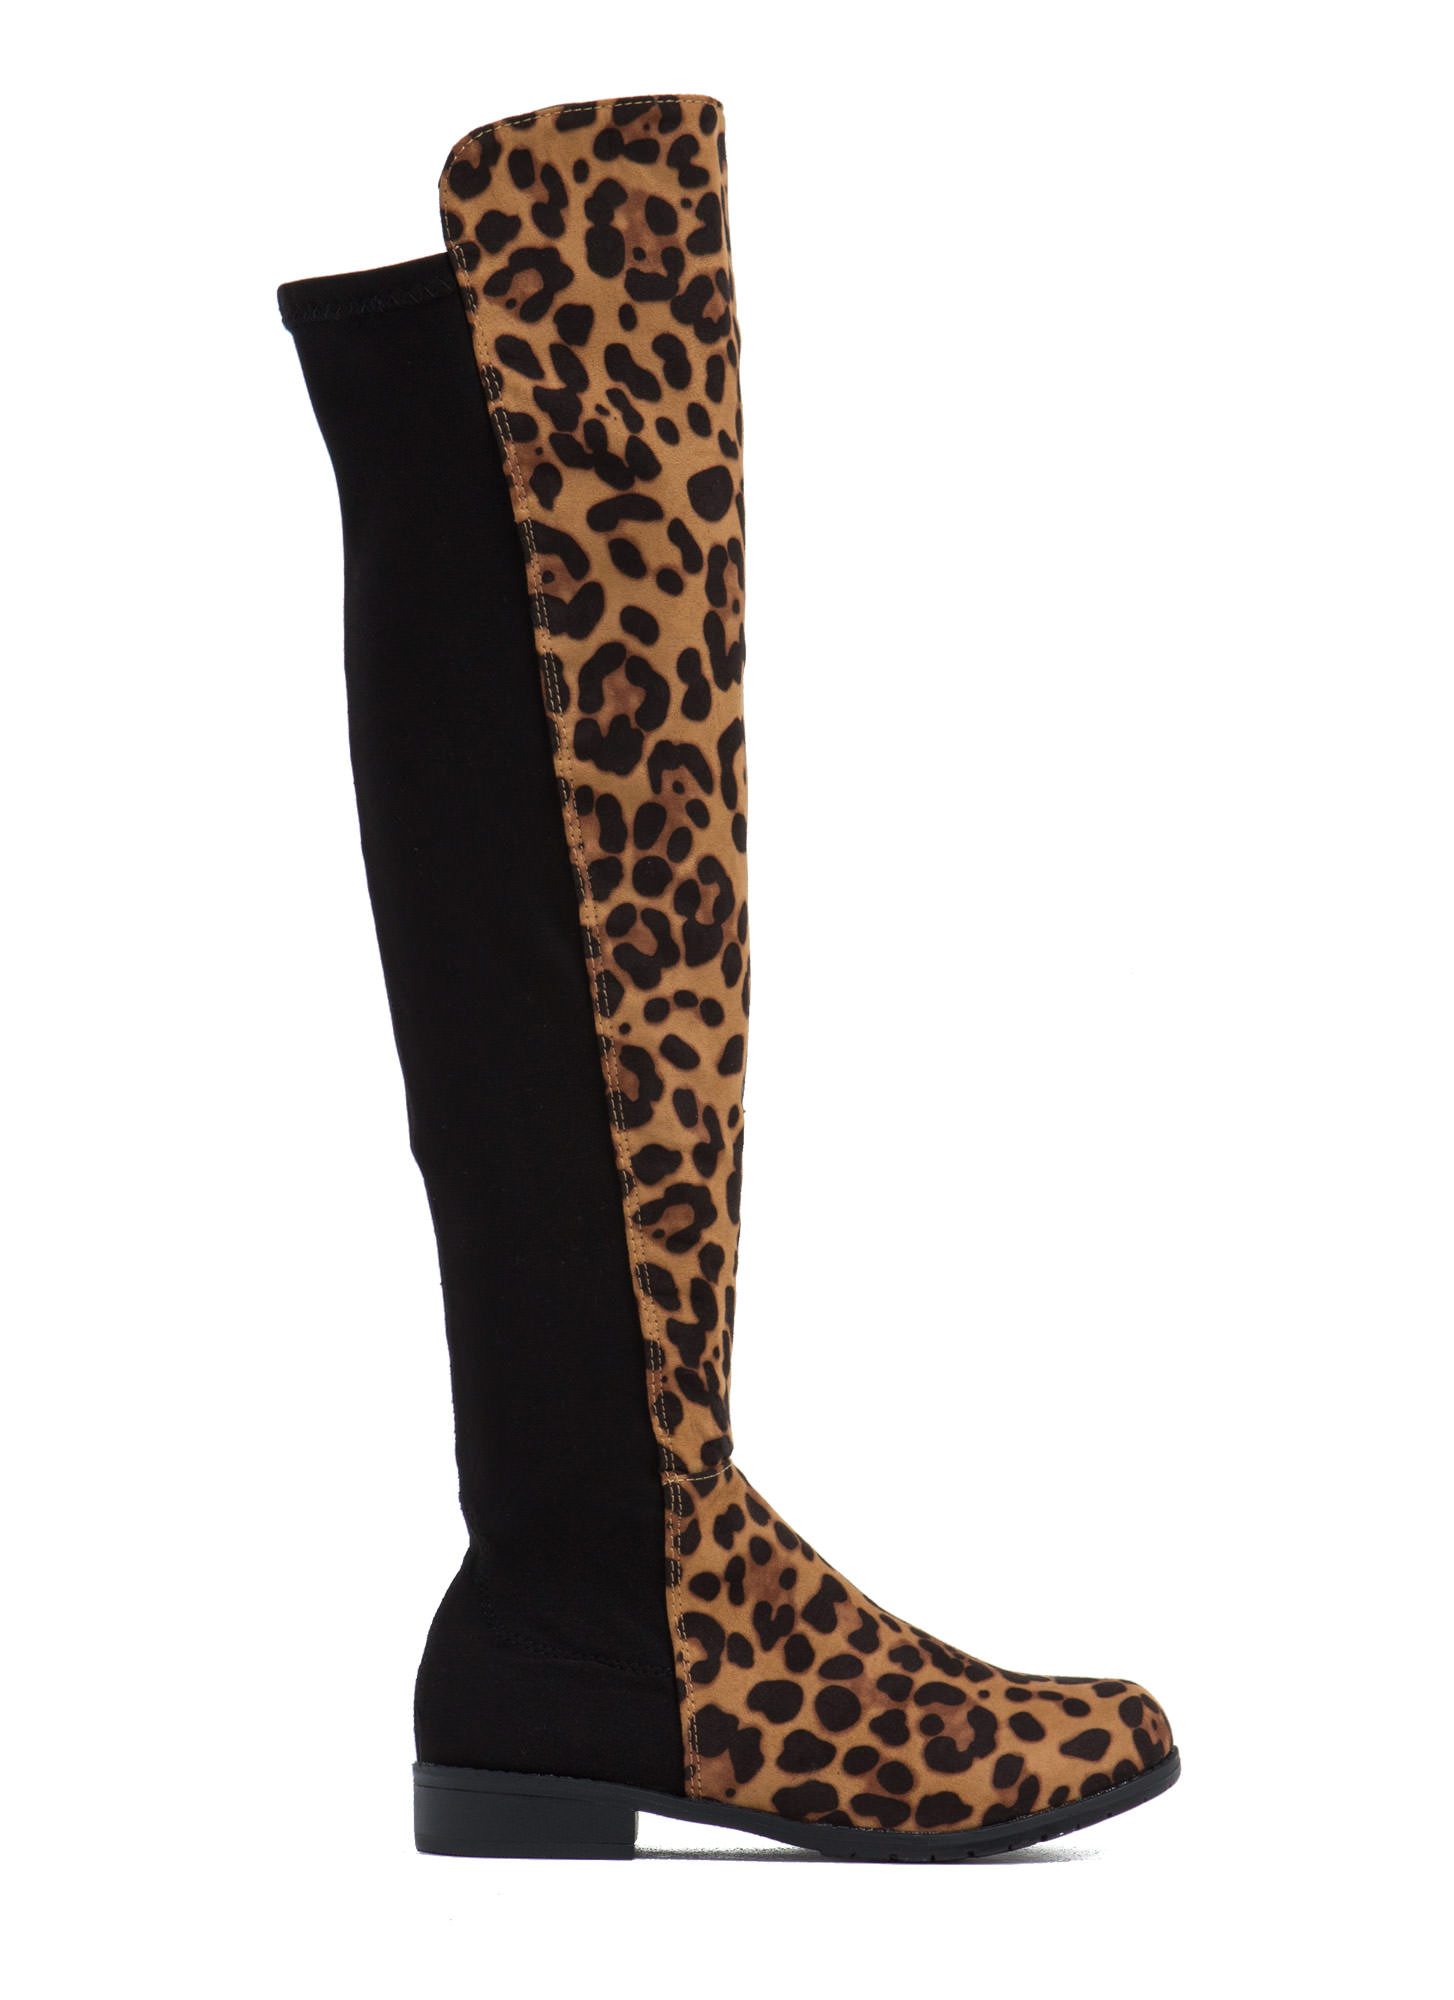 GoJane Releases New Line of Over-The-Knee Boots for Fall